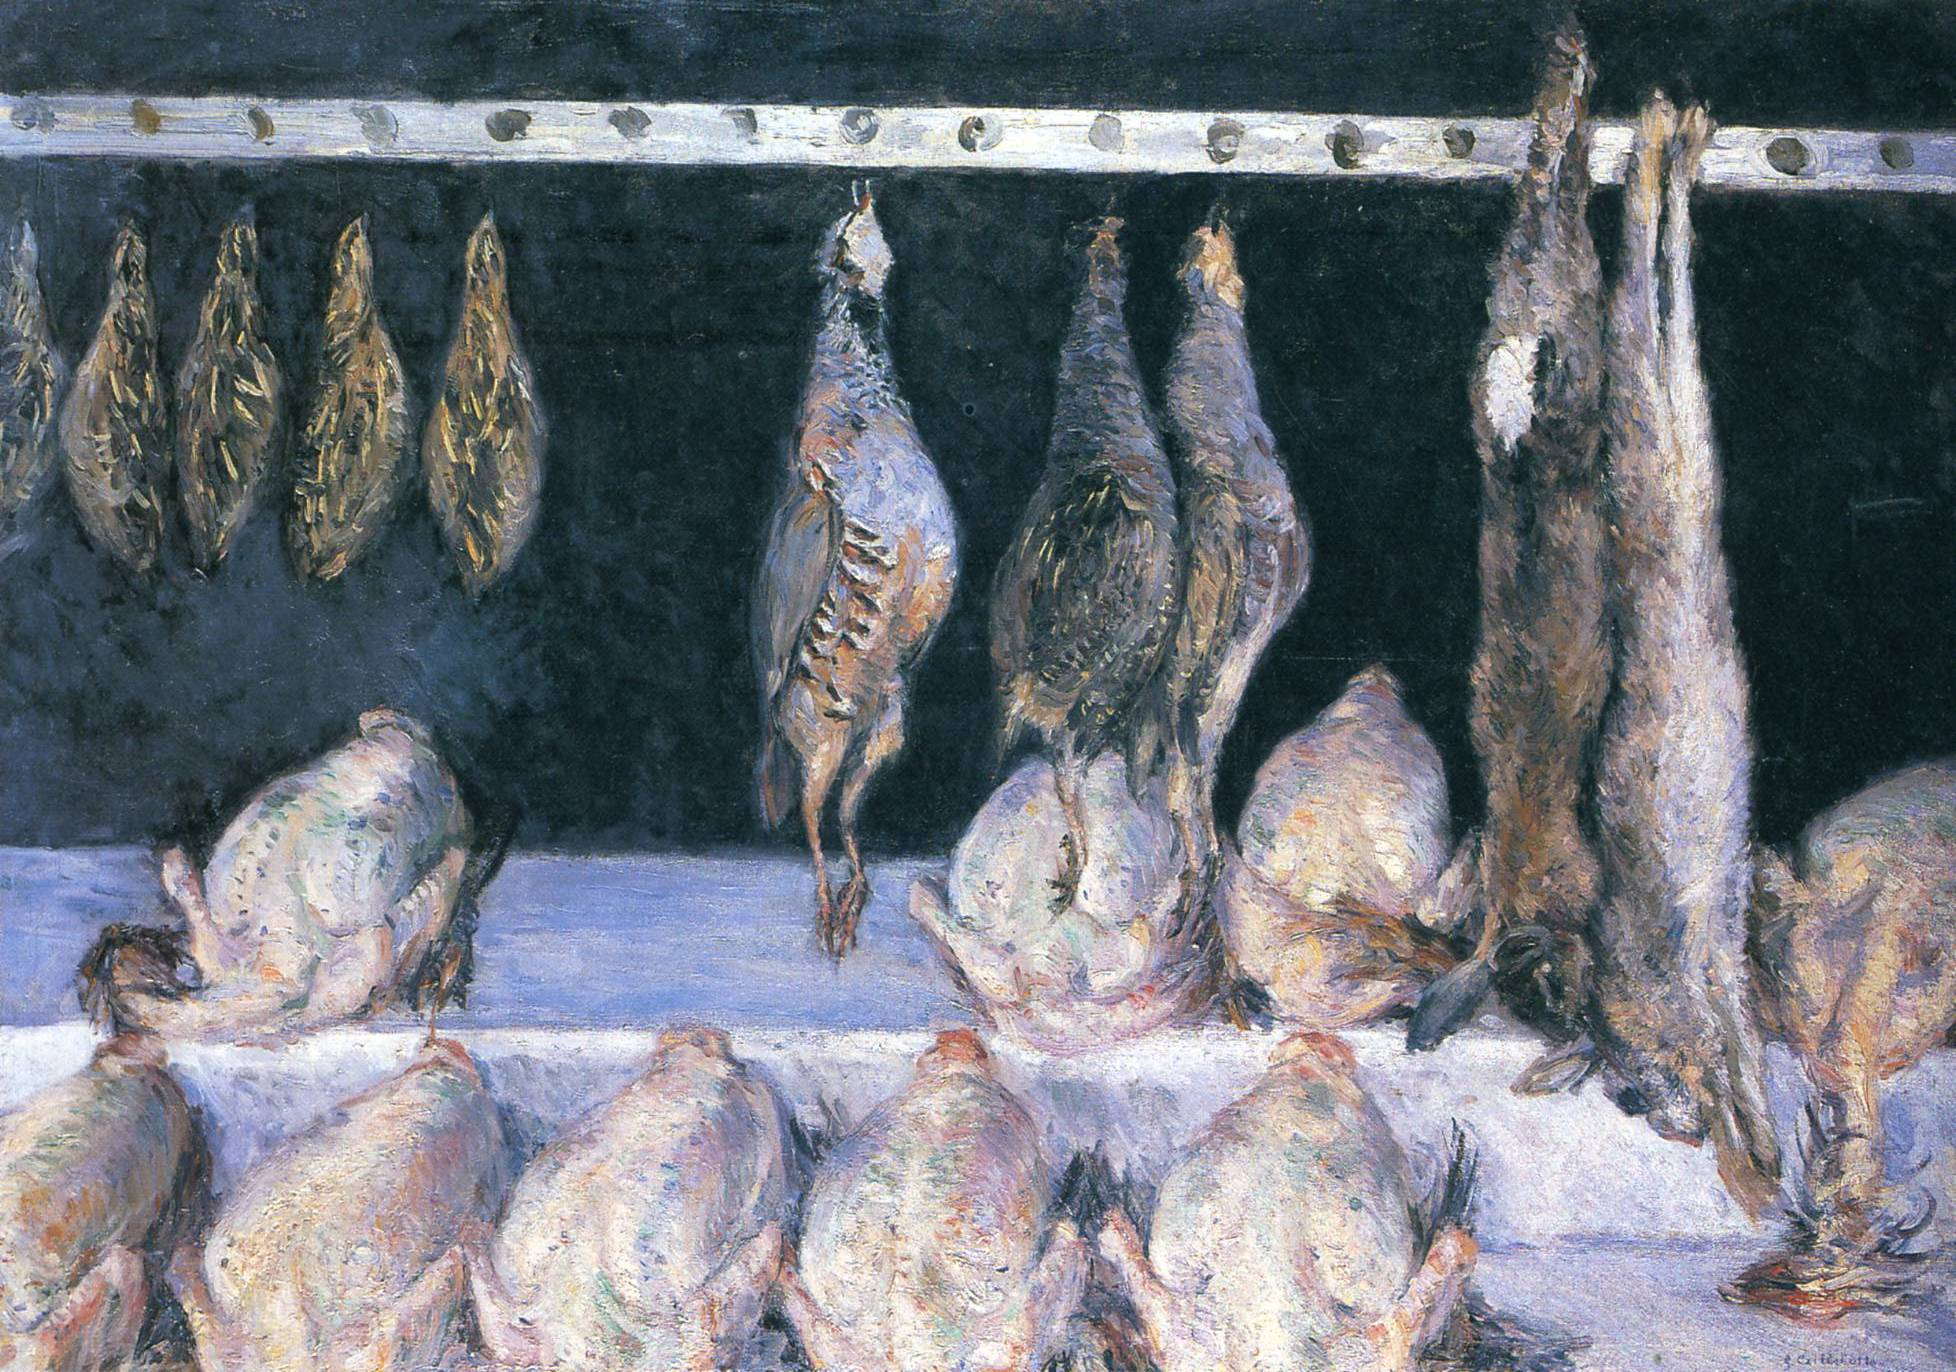 Display of Chickens and Game Birds, 1882